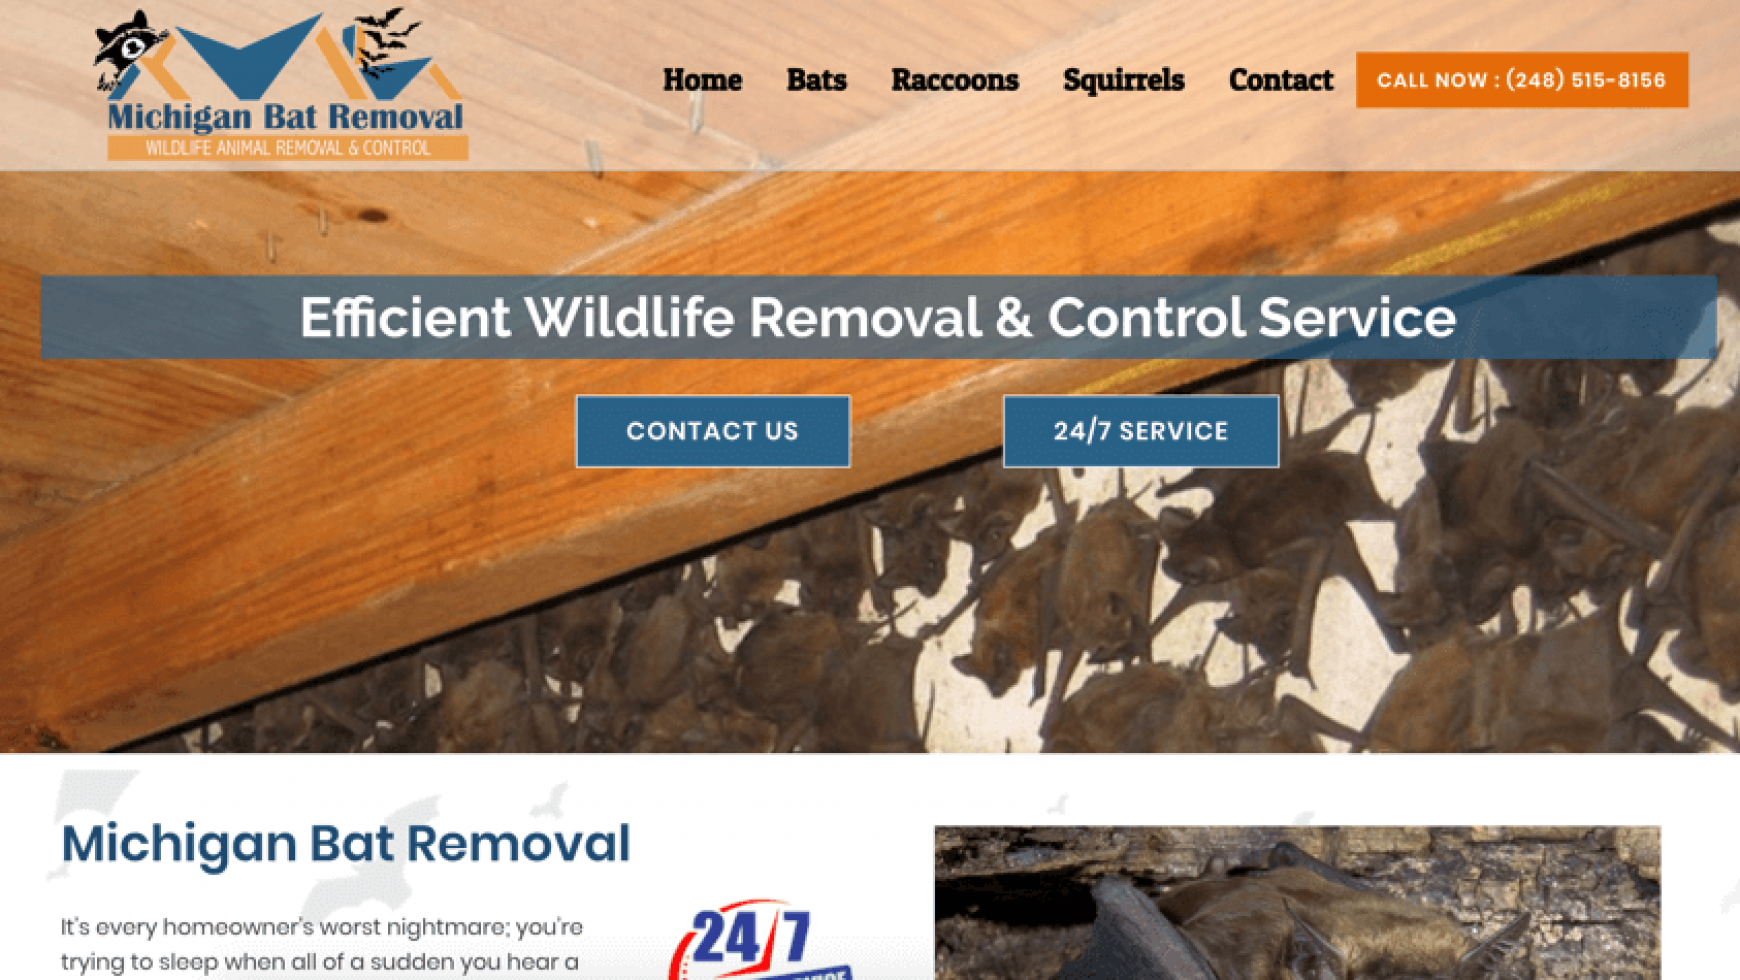 Michigan Bat Removal Website